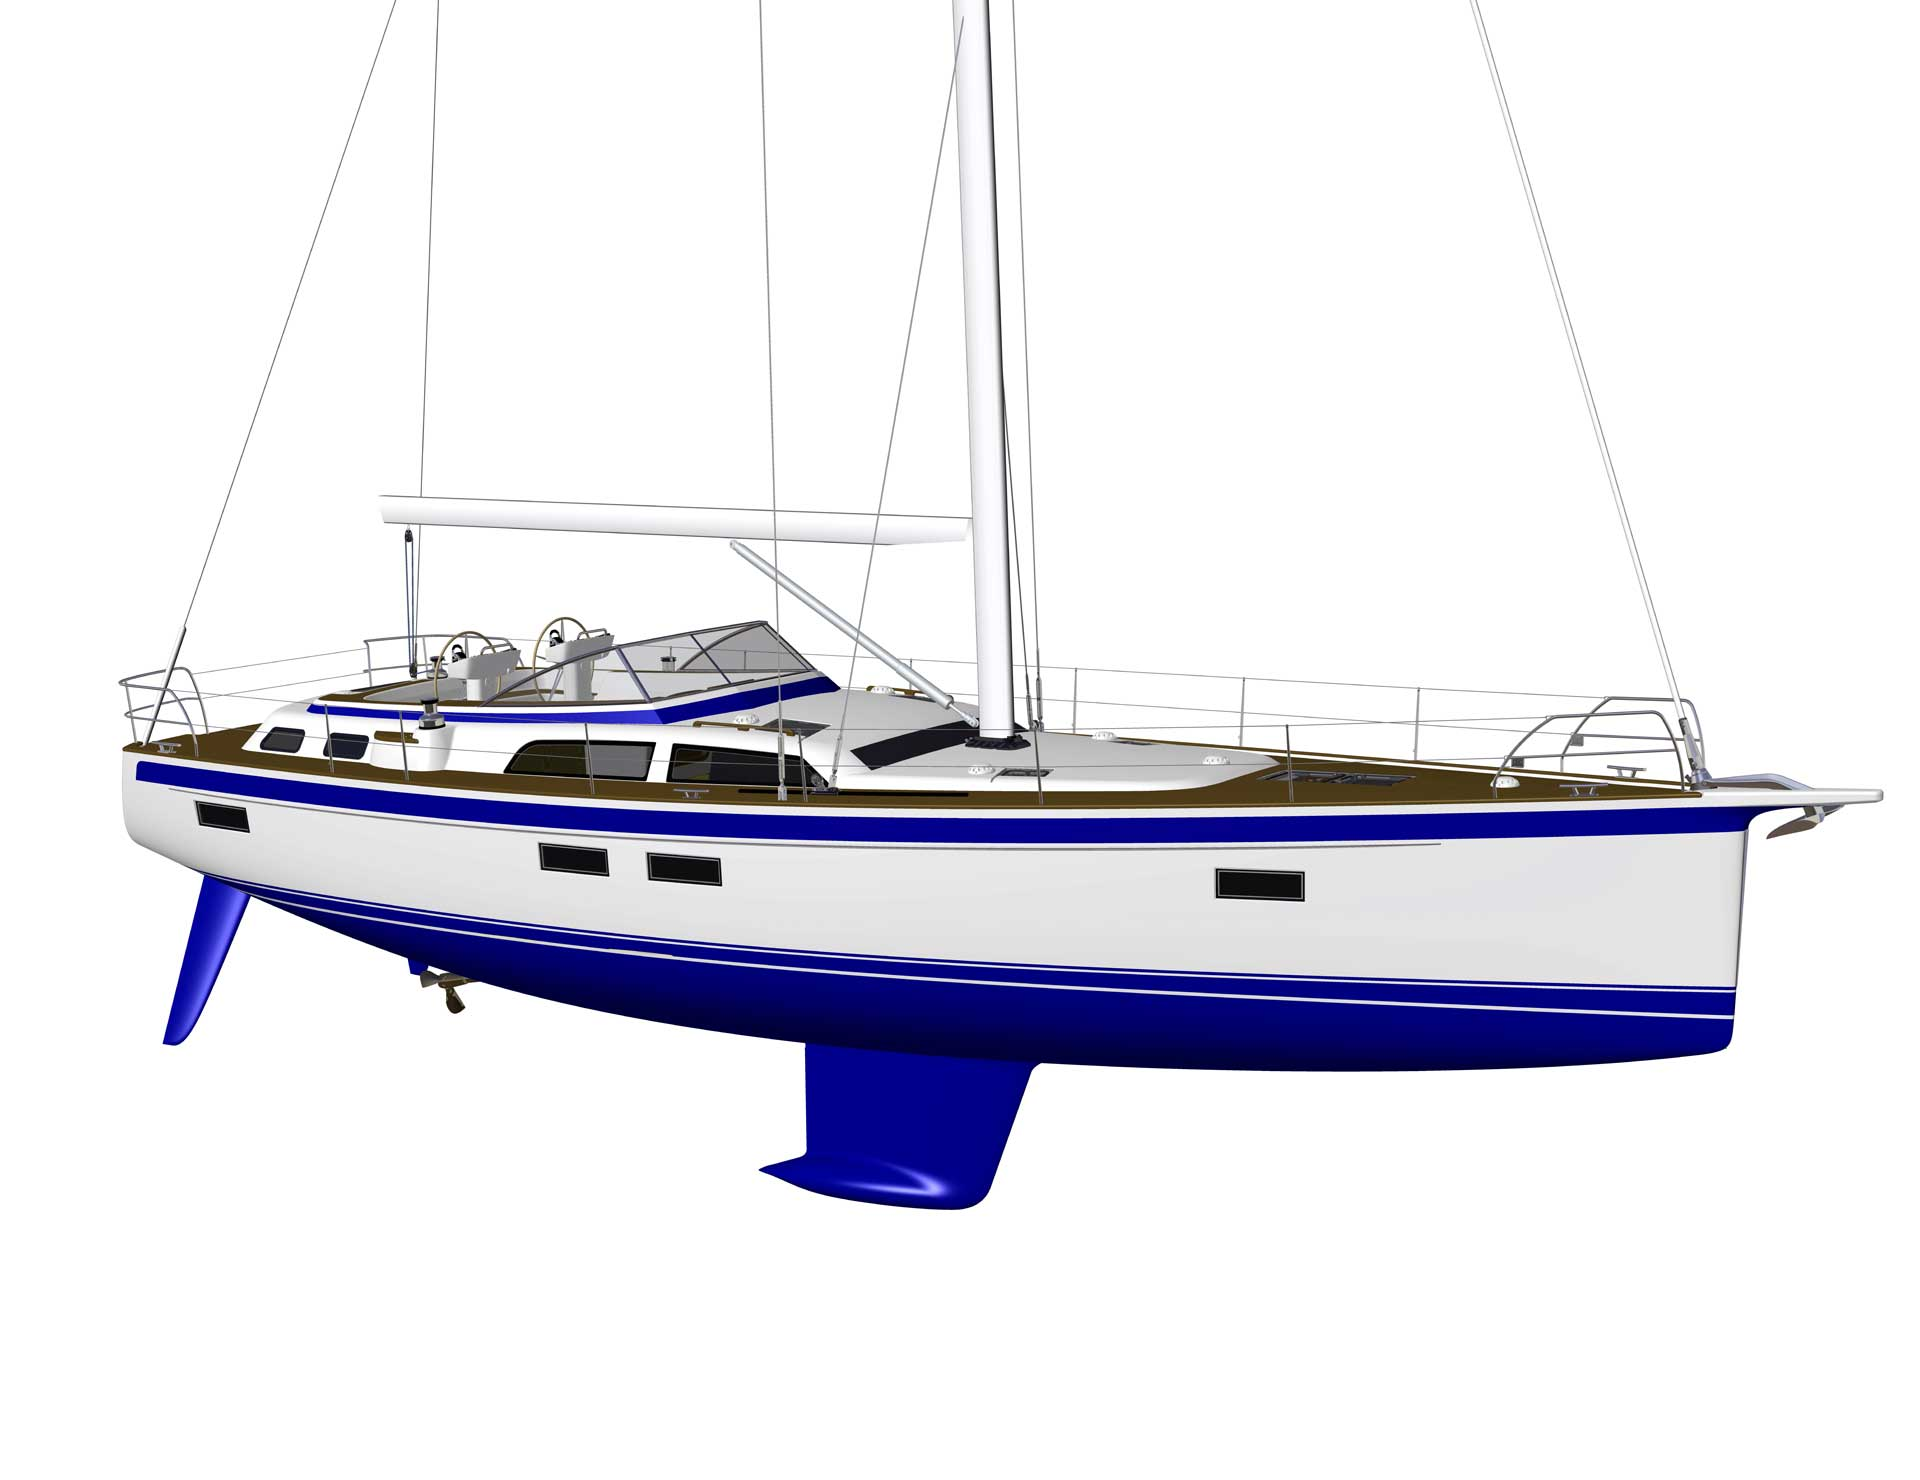 Hallberg-Rassy 340, 40C, 44 and the world premiere 50 at Boot Düsseldorf 23-31 January 2021